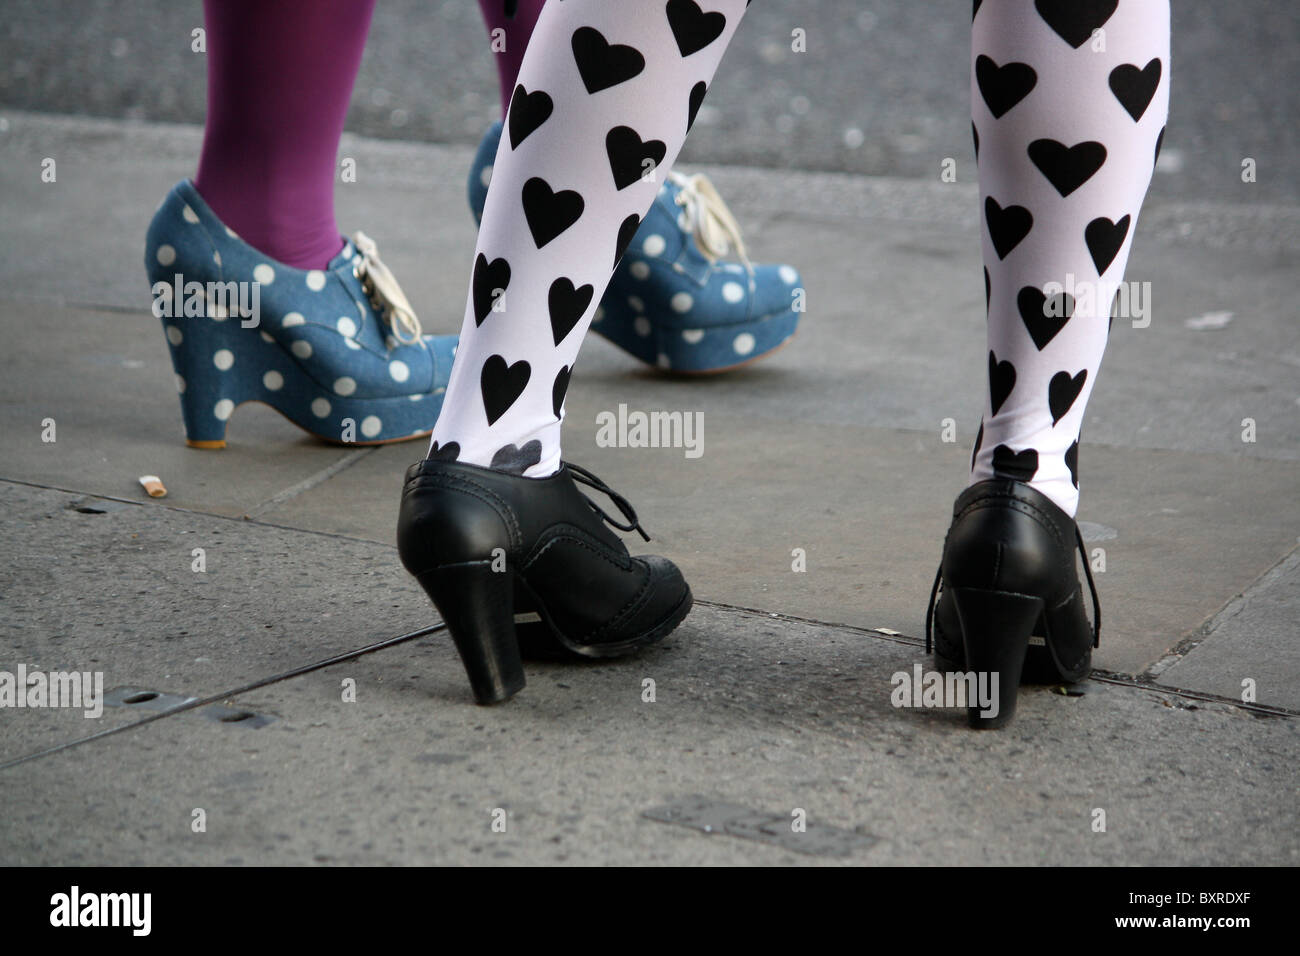 Cropped view of women standing on street wearing fashionable tights and rockabilly shoes - Stock Image